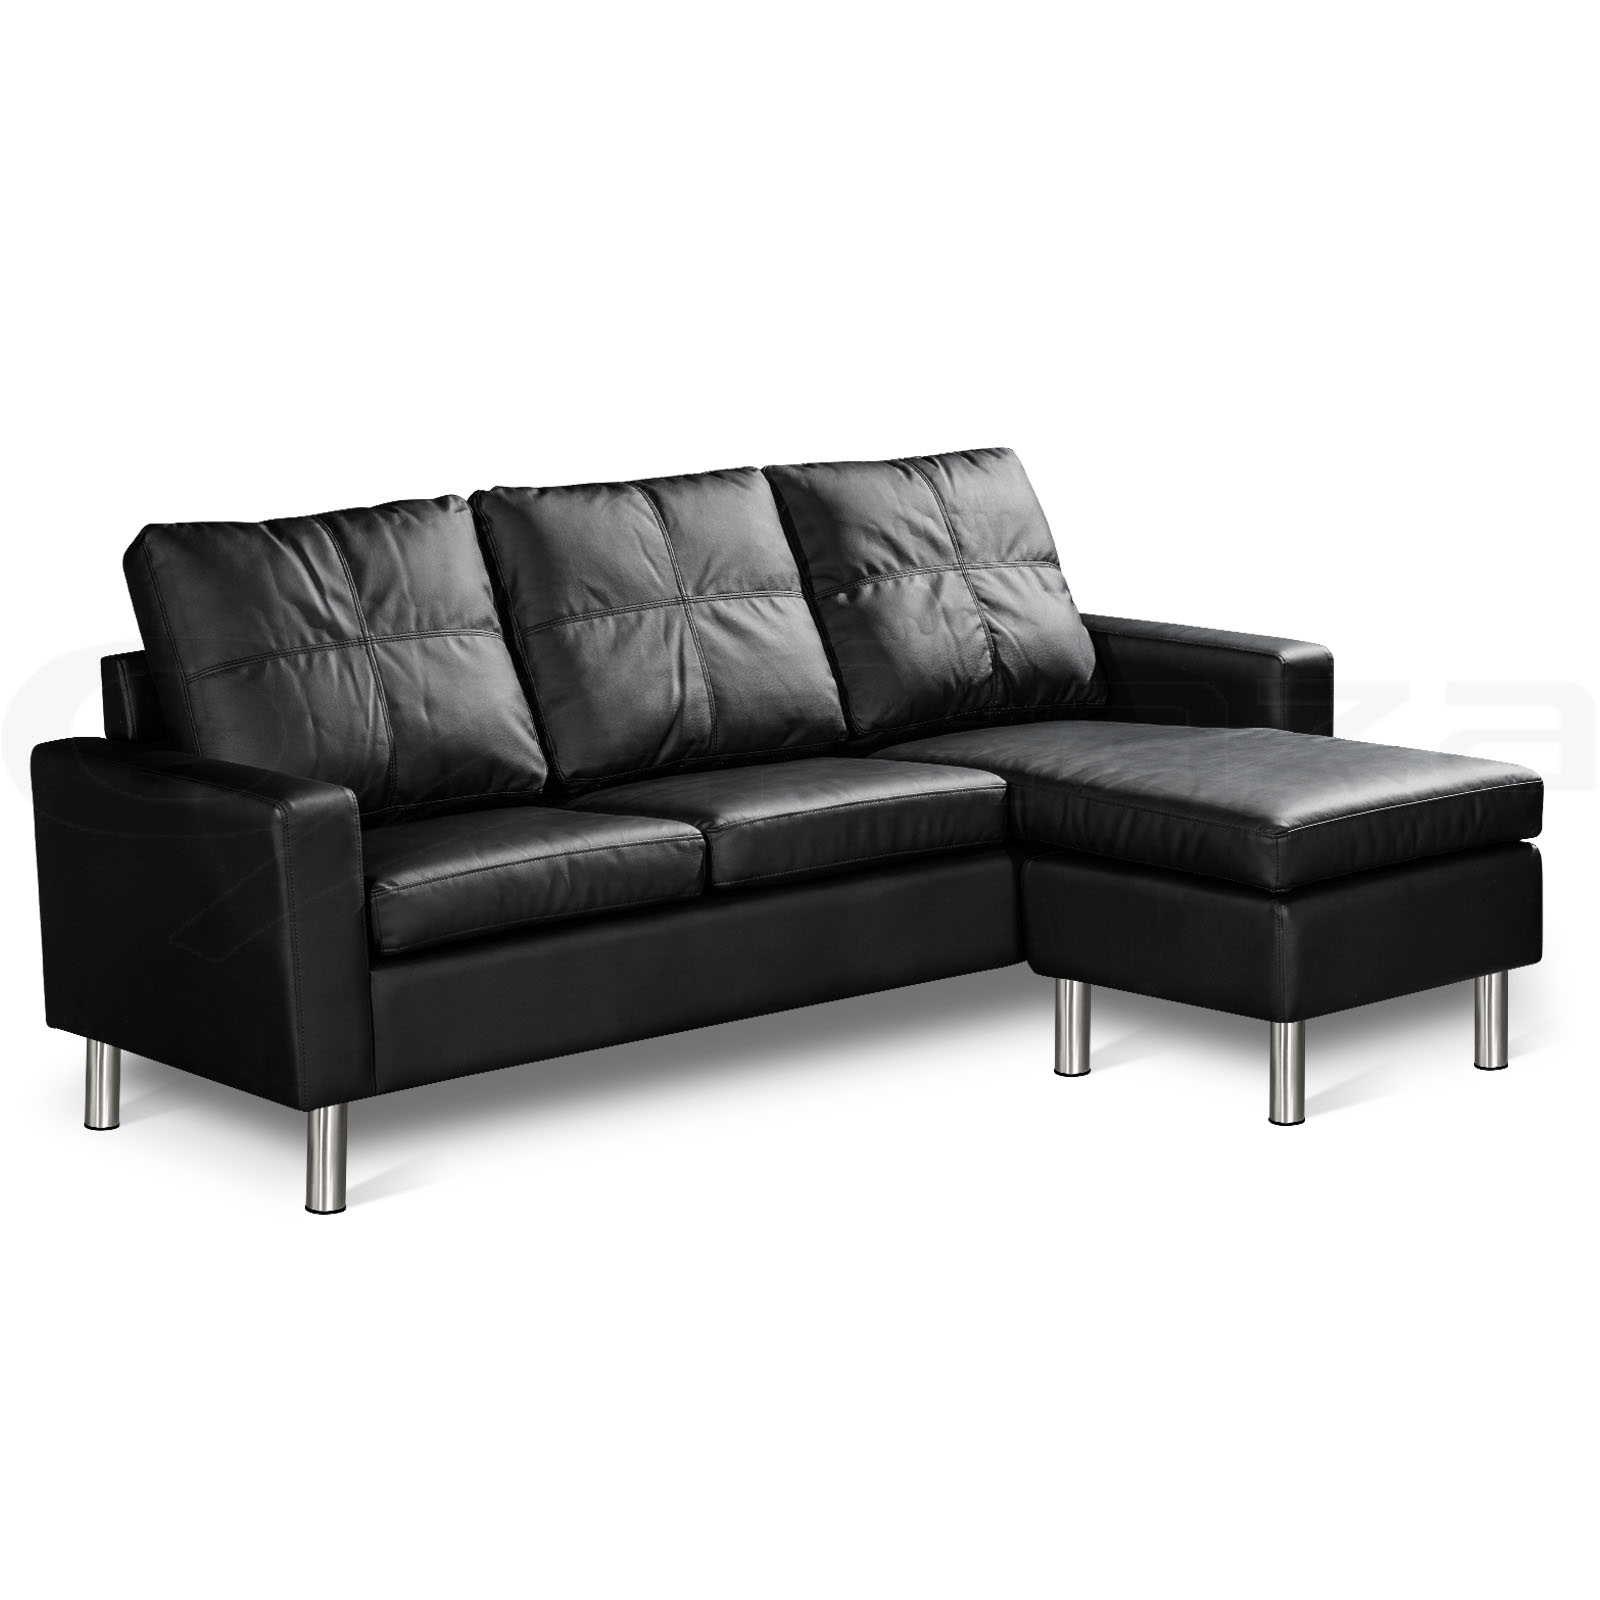 Pu leather sofa modular lounge suite chaise double couch 4 for Black leather chaise lounge sofa